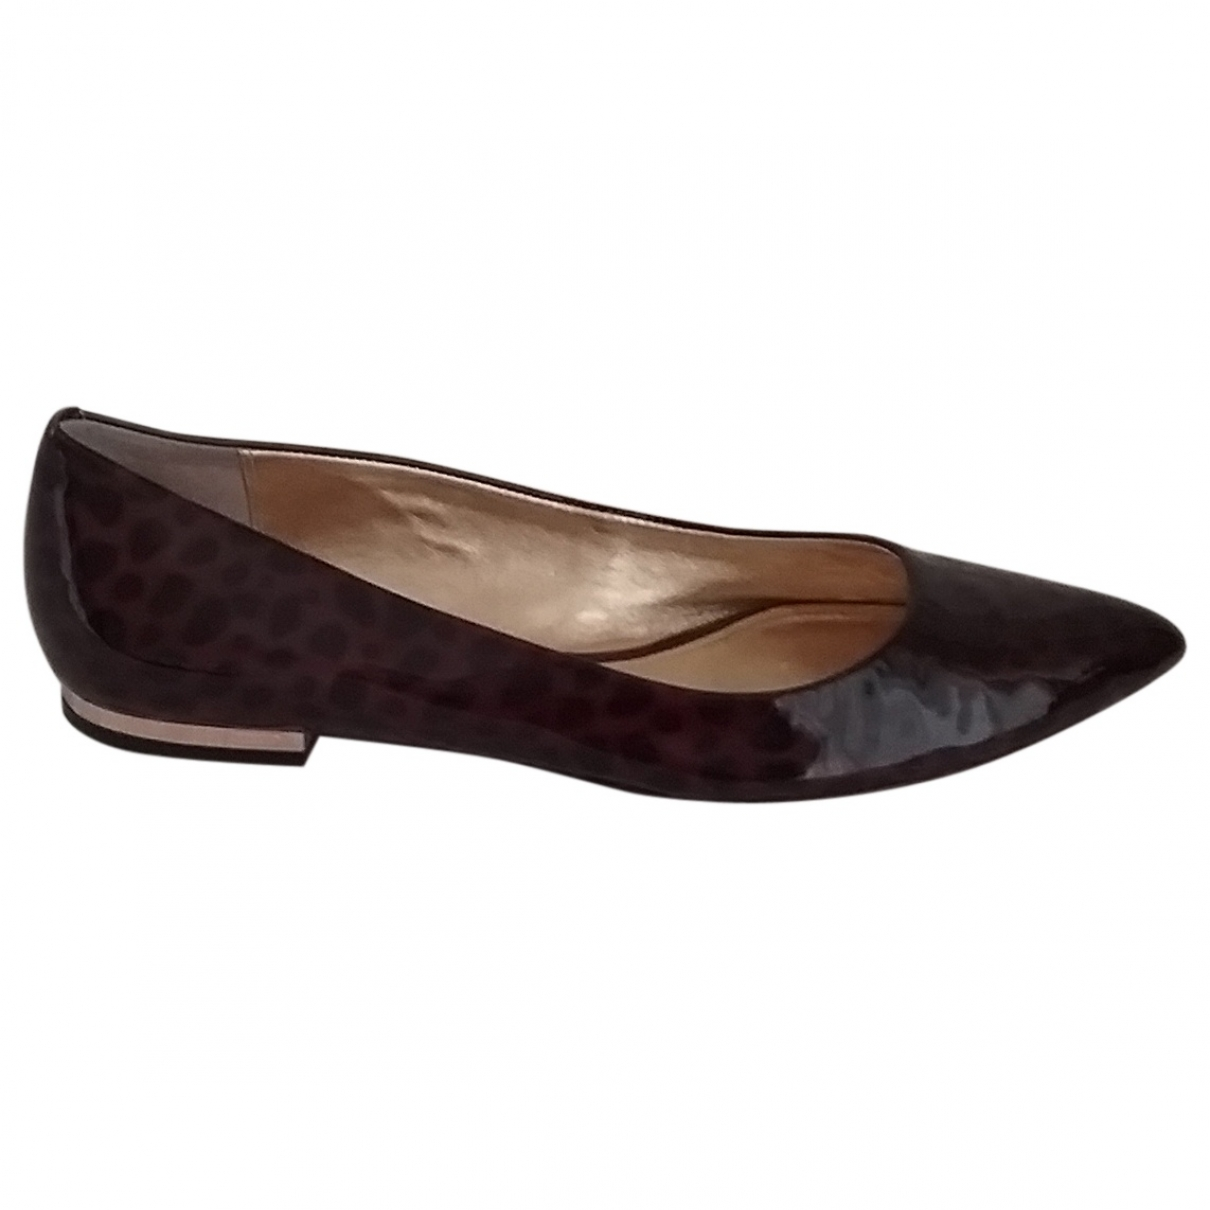 Coach \N Brown Patent leather Ballet flats for Women 8 US